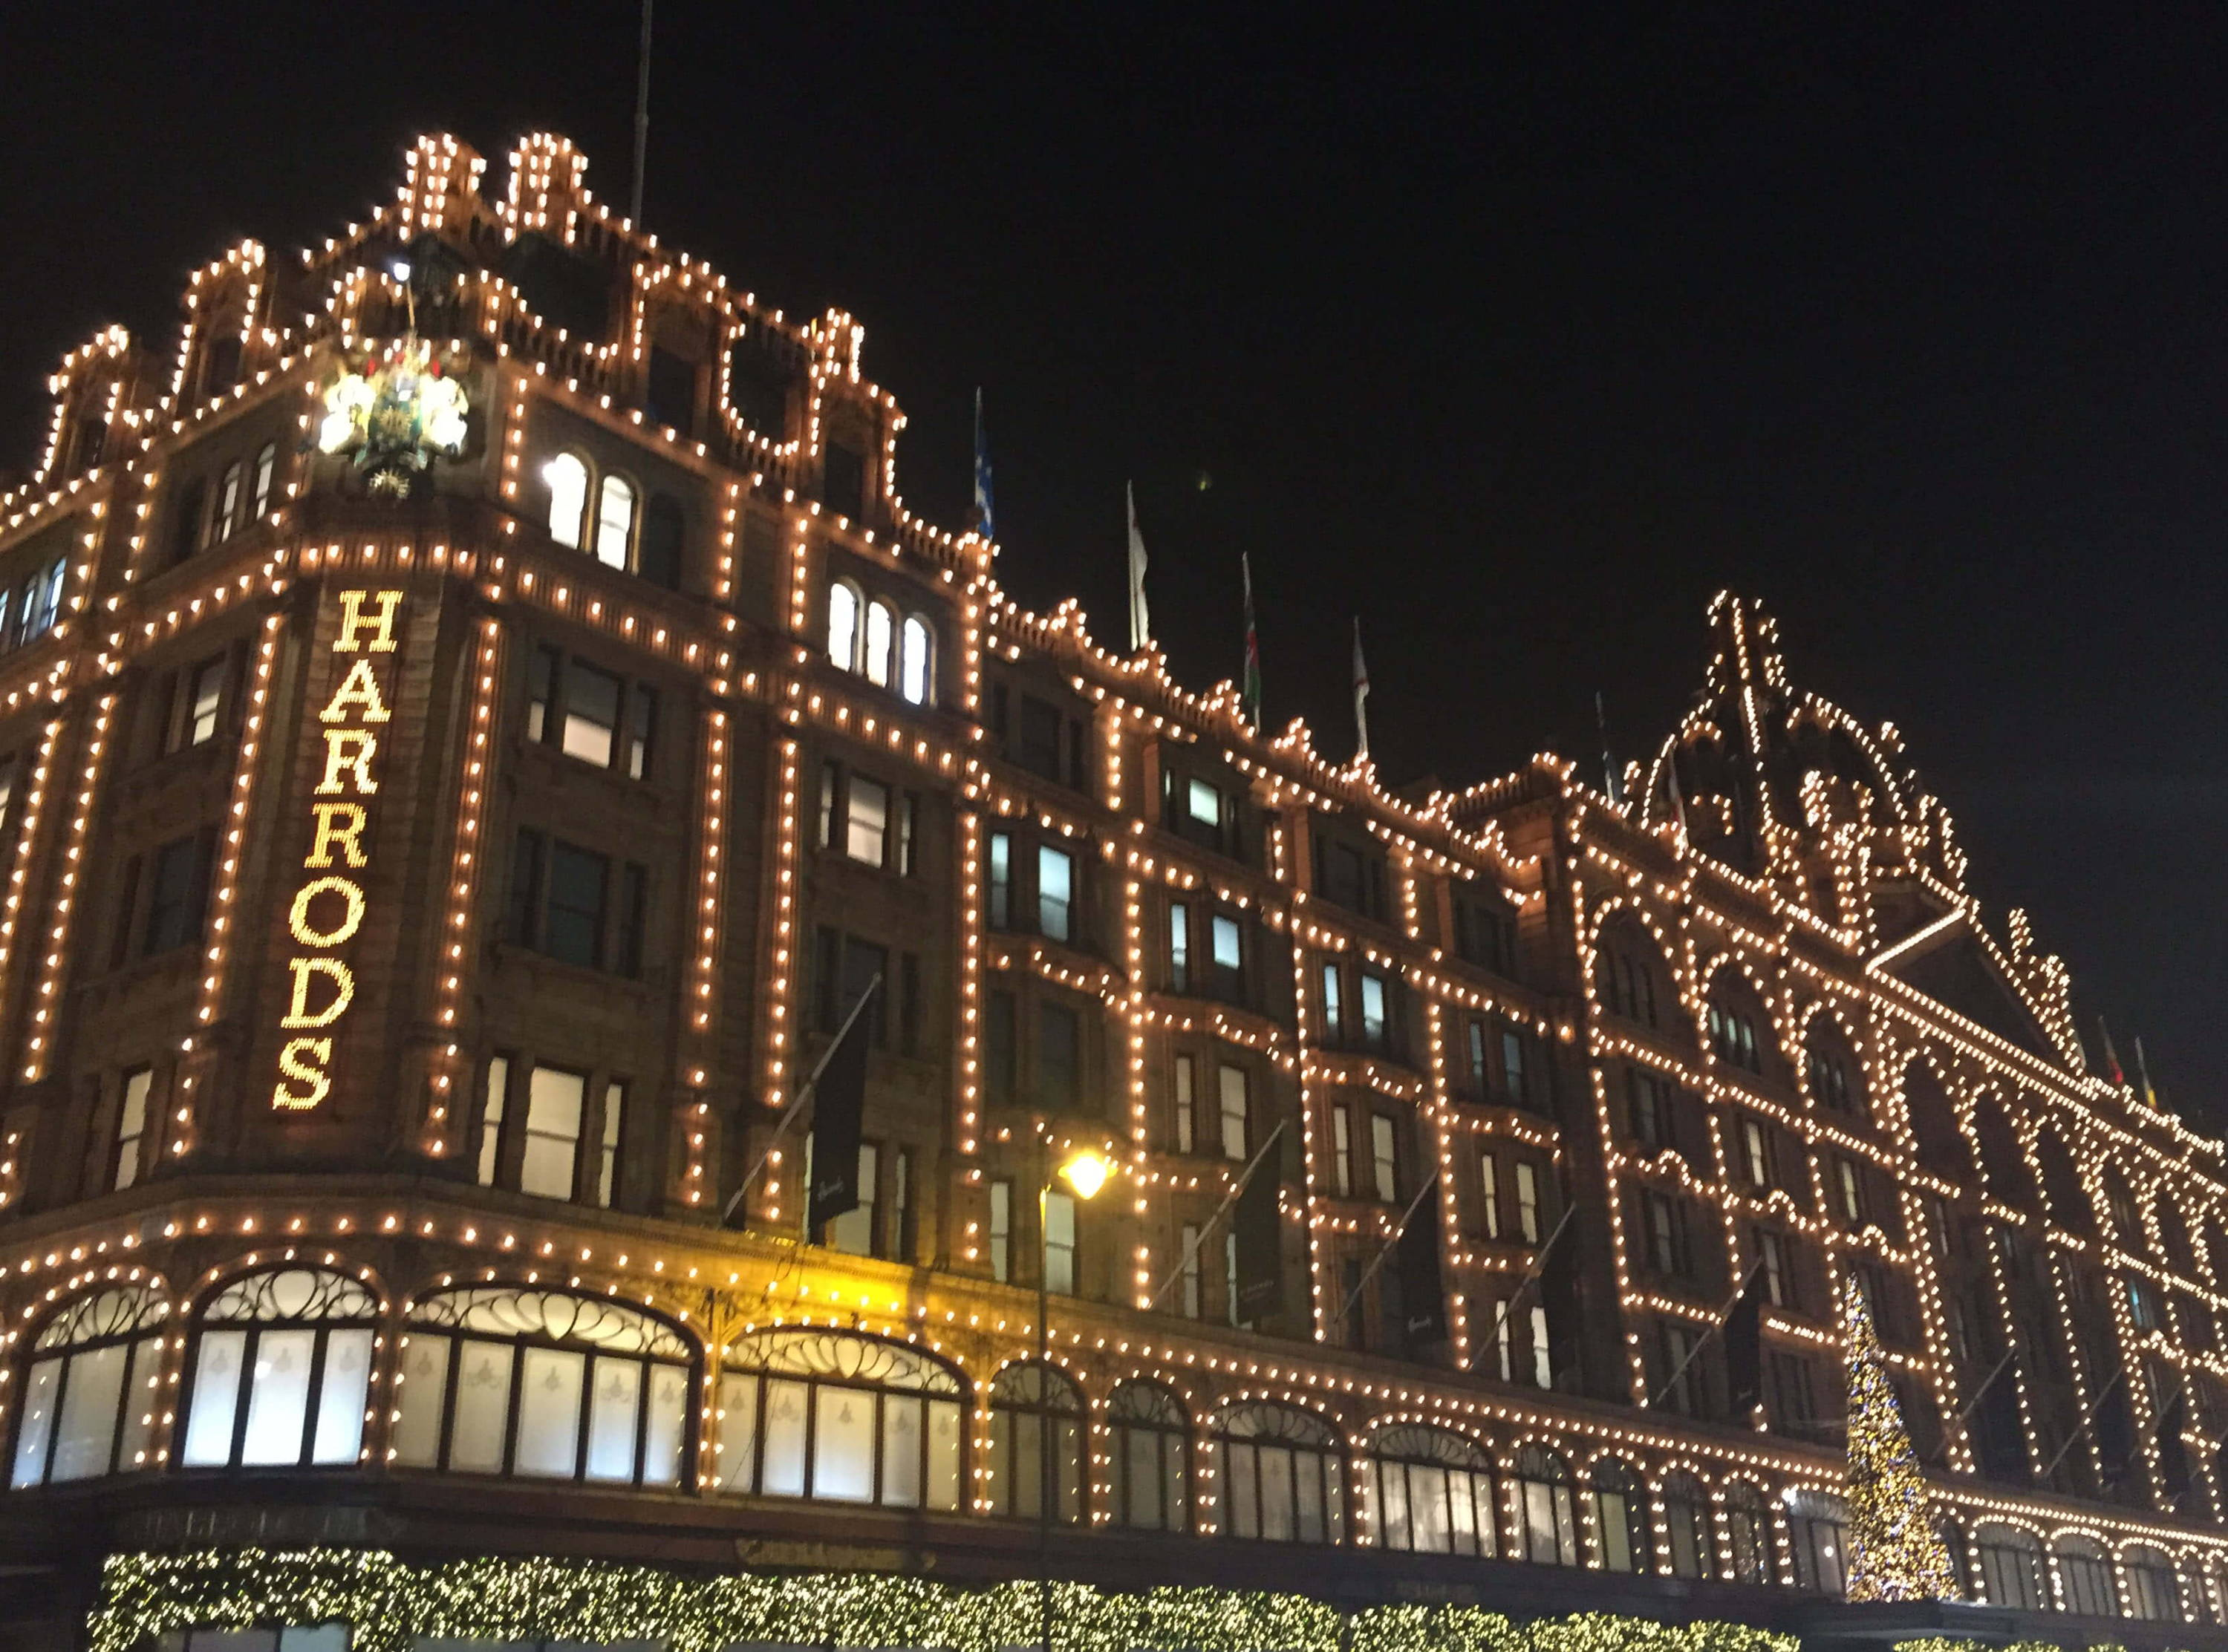 Harrods is the world's leading luxury department store in London, fashion, perfumes, home and lifestyle